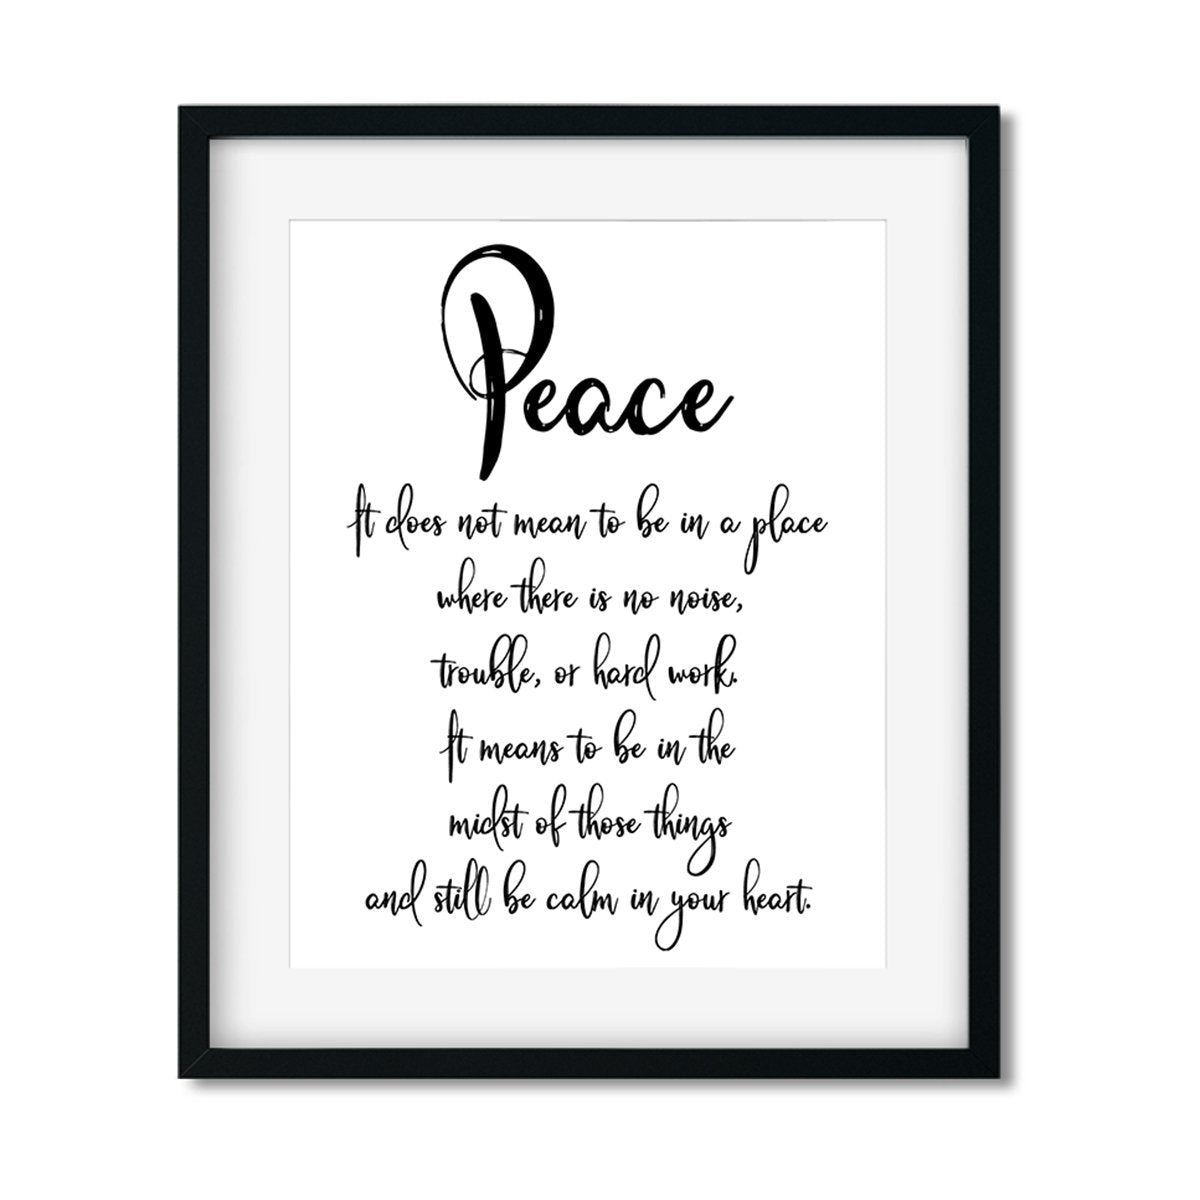 Peace - Art Print - Netties Expressions